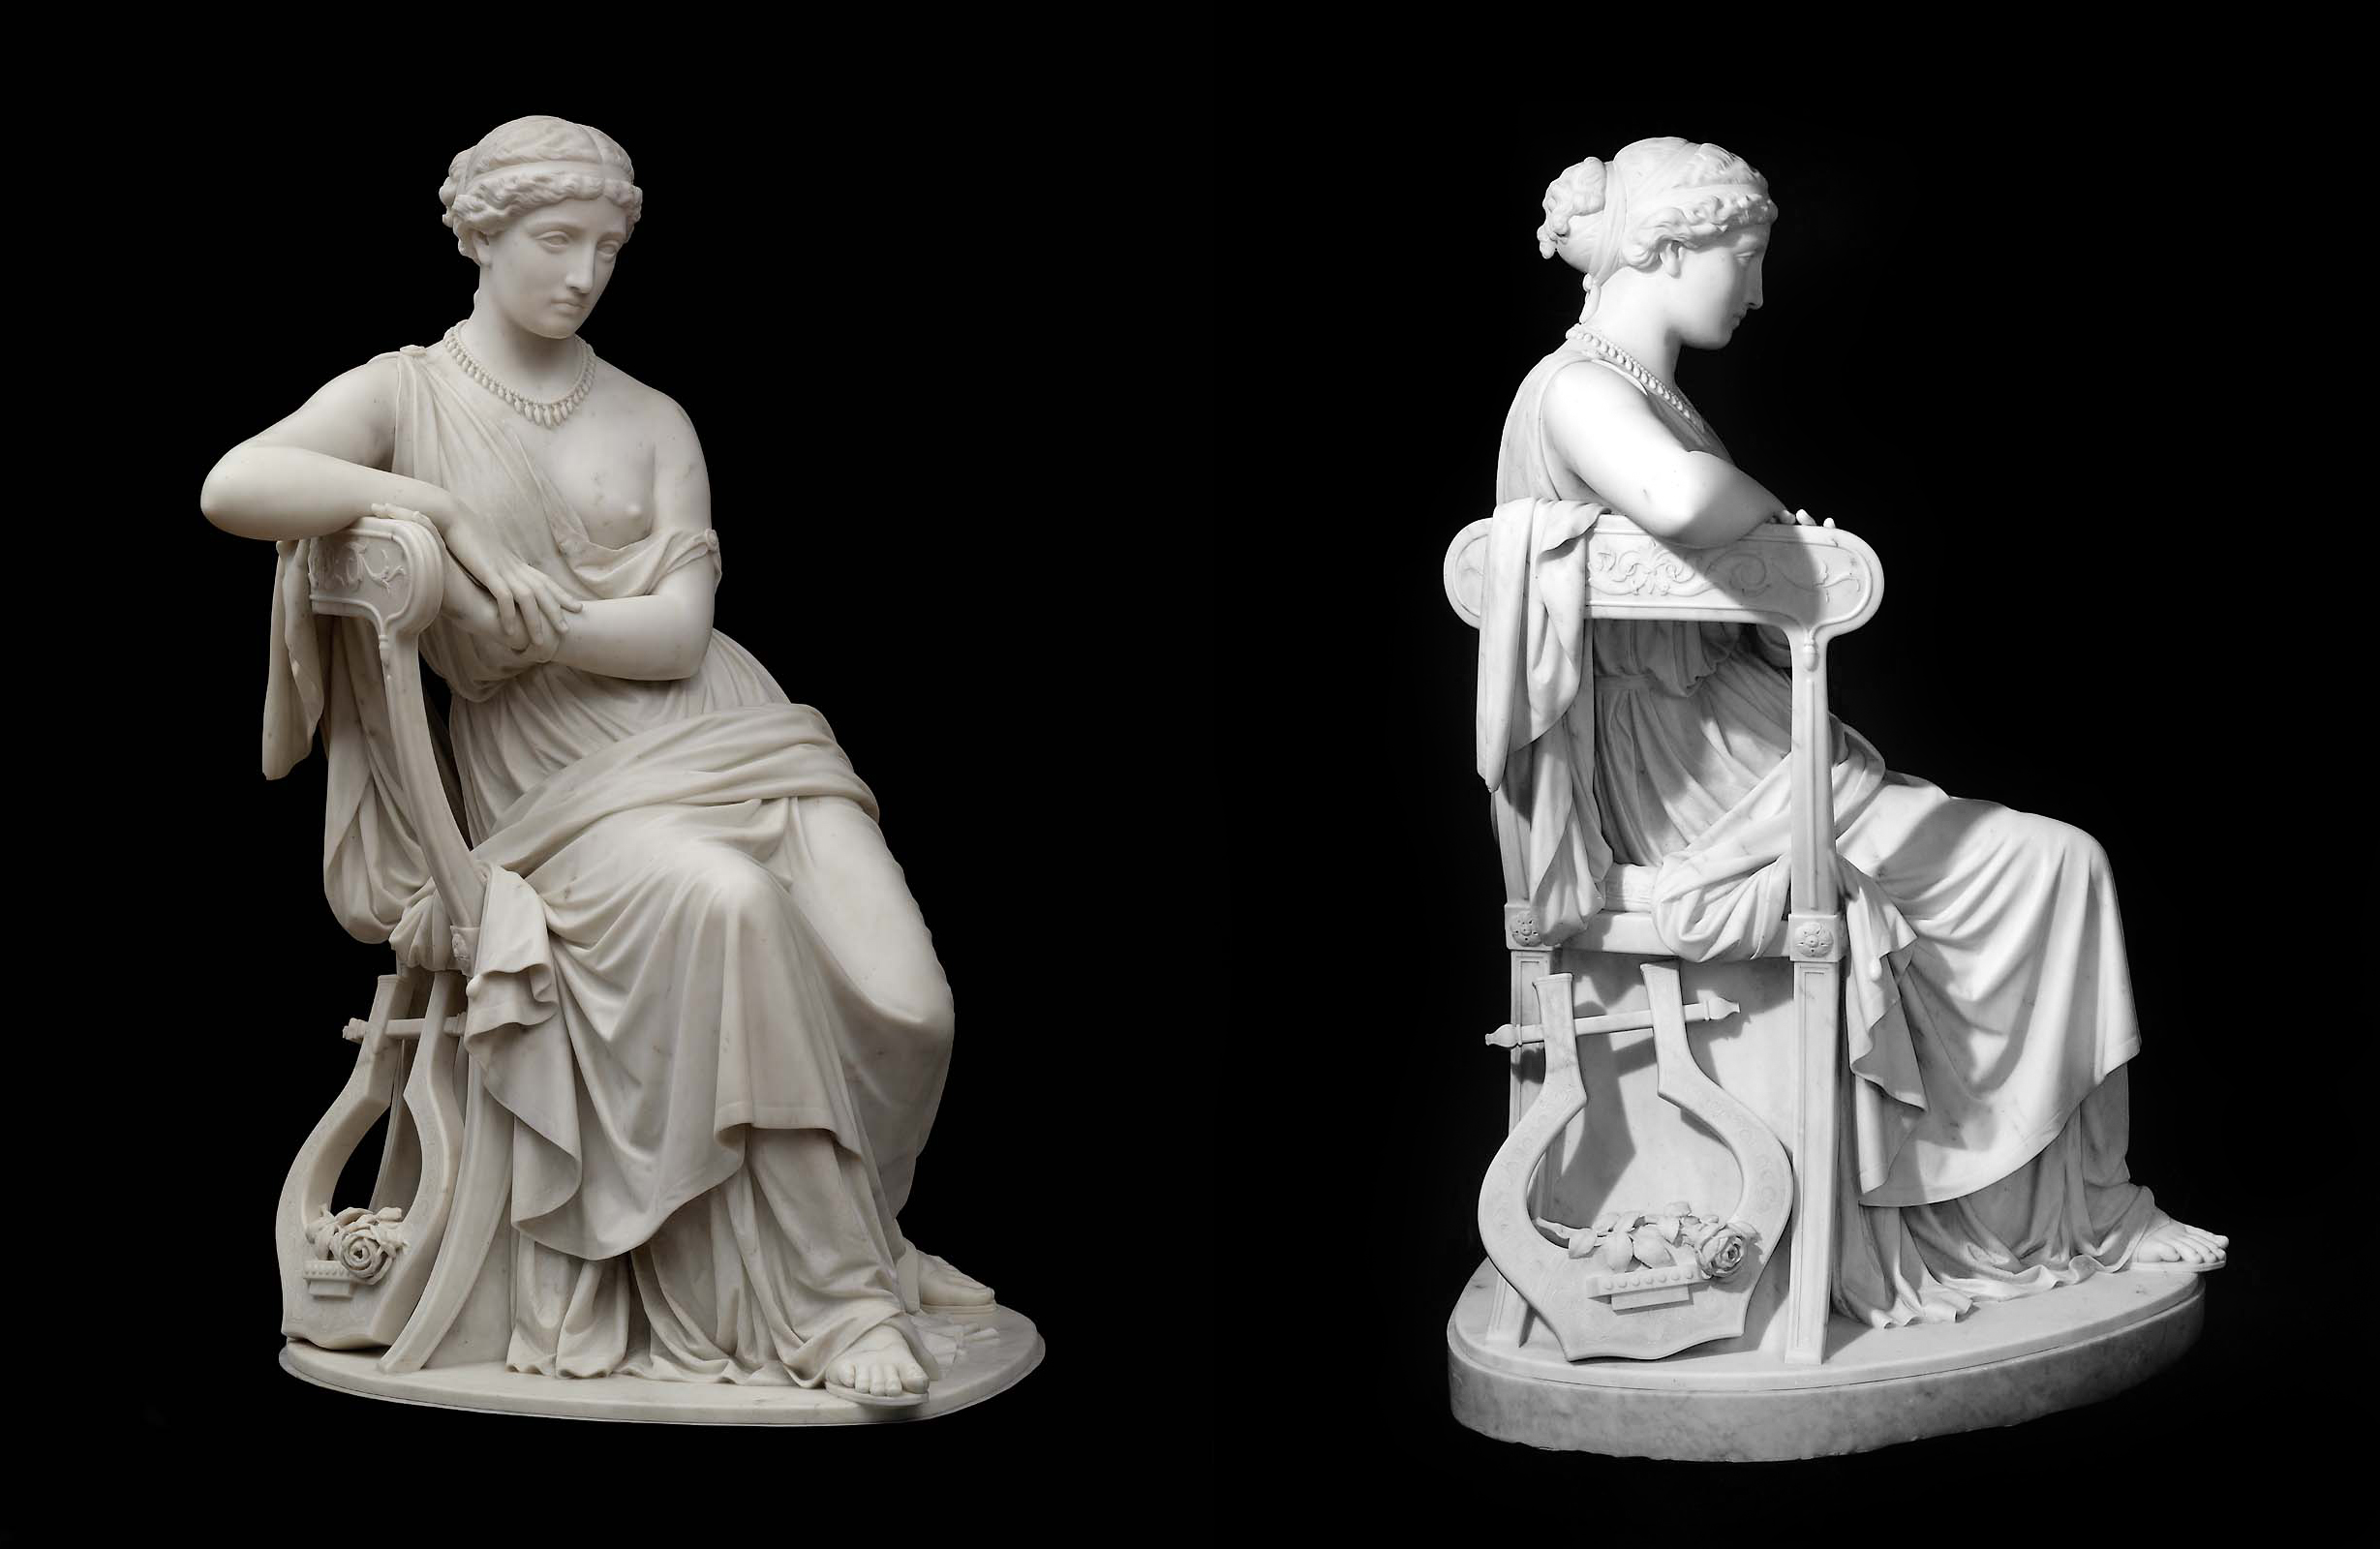 1863, marble, 137.5 x 85.1 x 84.1 cm, Museum of Fine Arts, Boston.